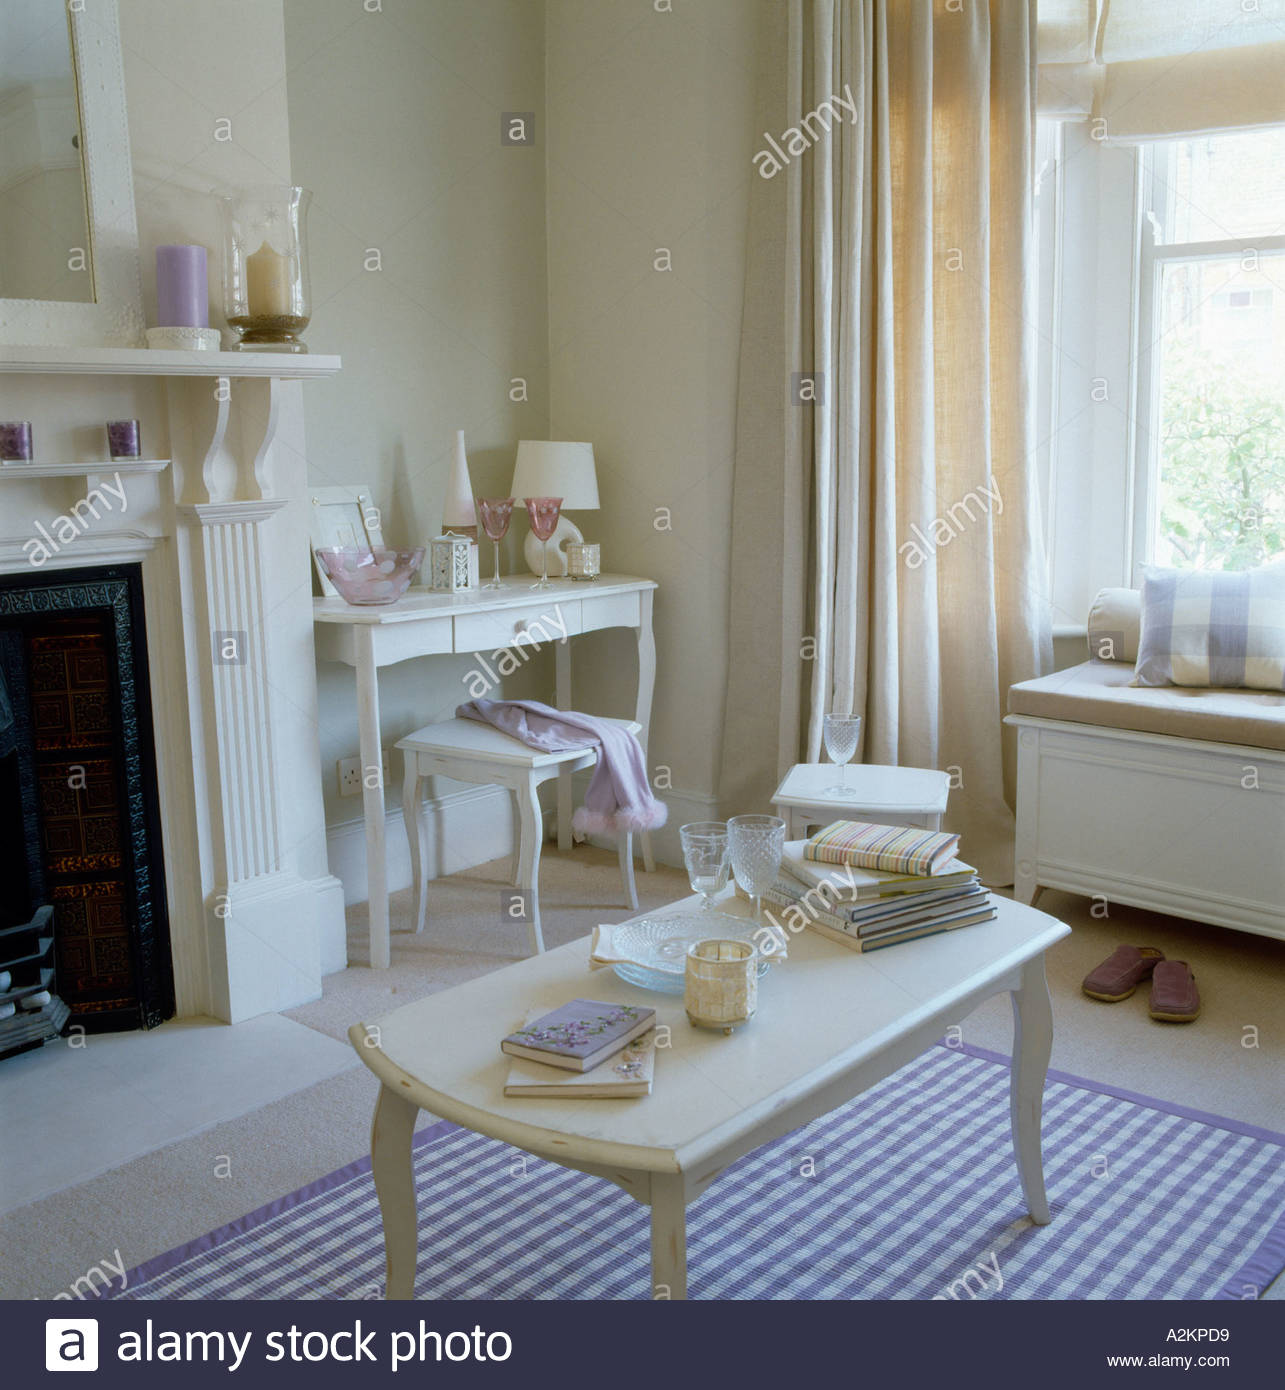 Living room decorated in lilac purple and cream colour scheme